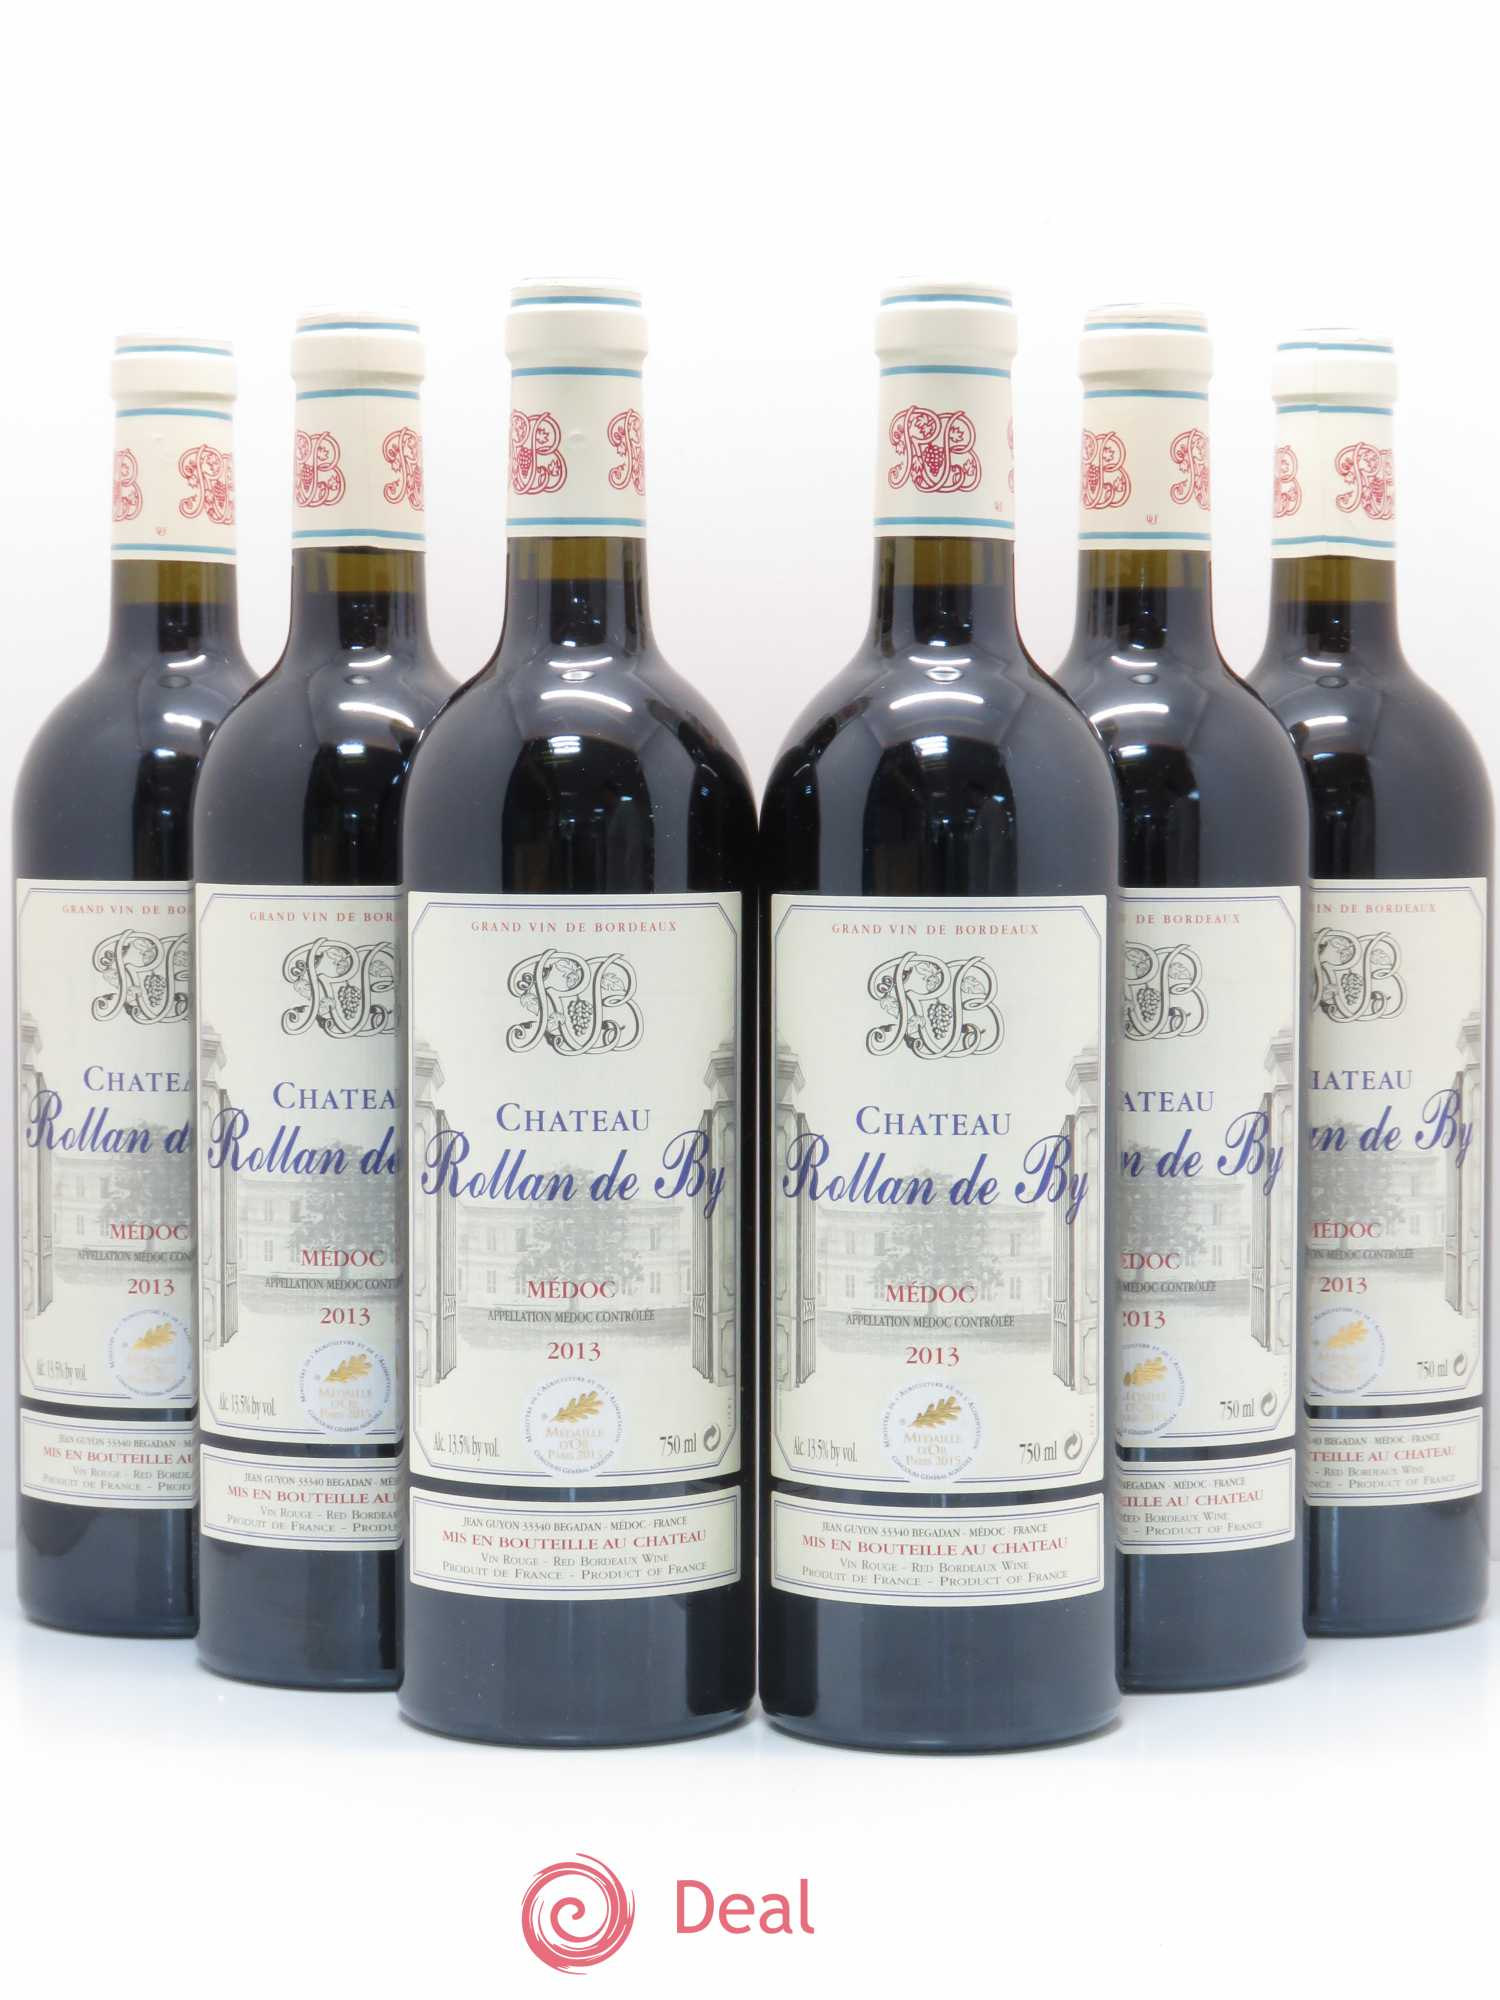 Château Rollan de By Cru Bourgeois (no reserve) 2013 - Lot of 6 Bottles